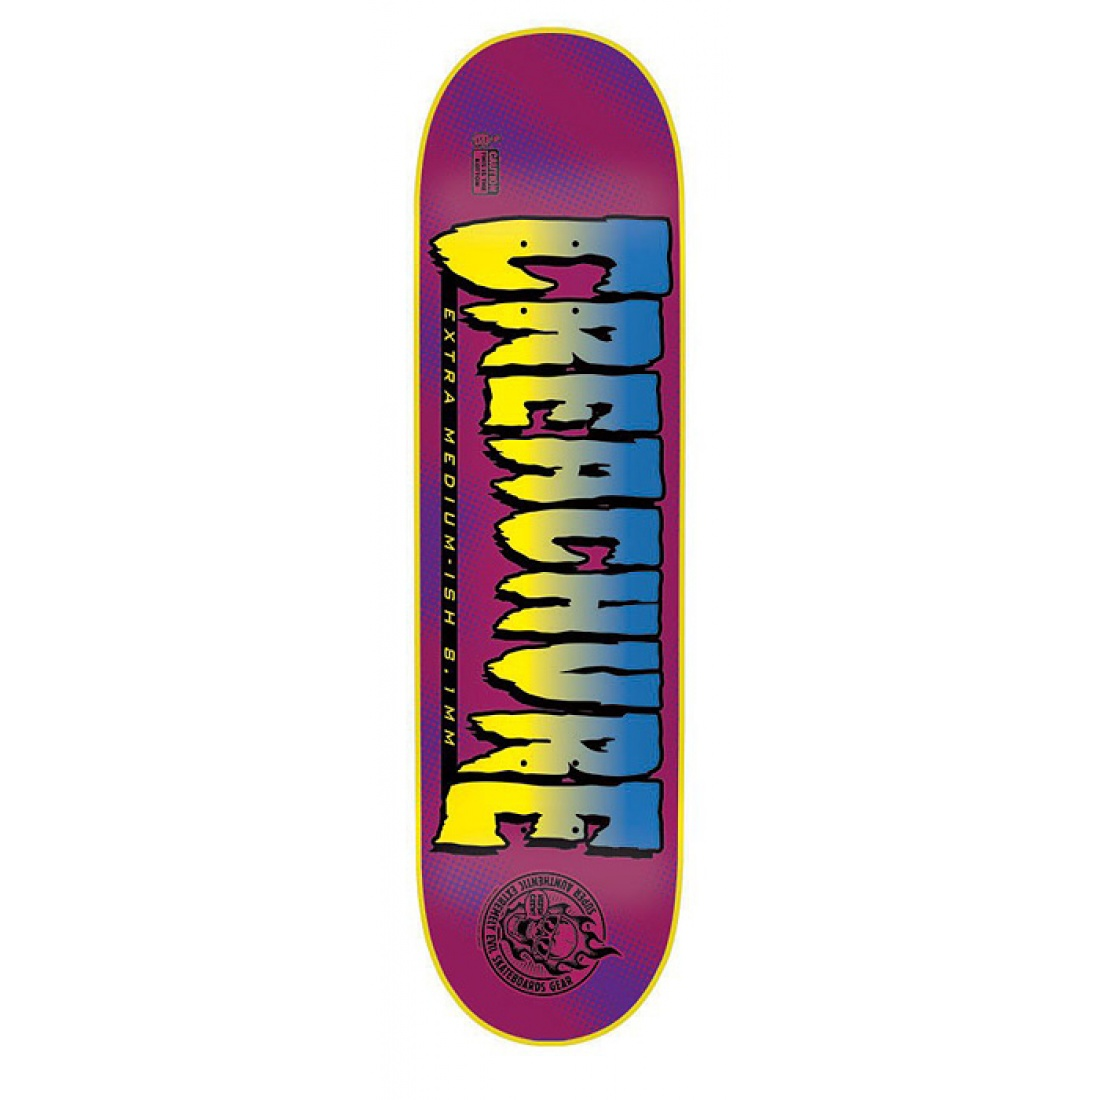 CRT-Team Gray Market Medium-ish Powerply 8.1 Deck